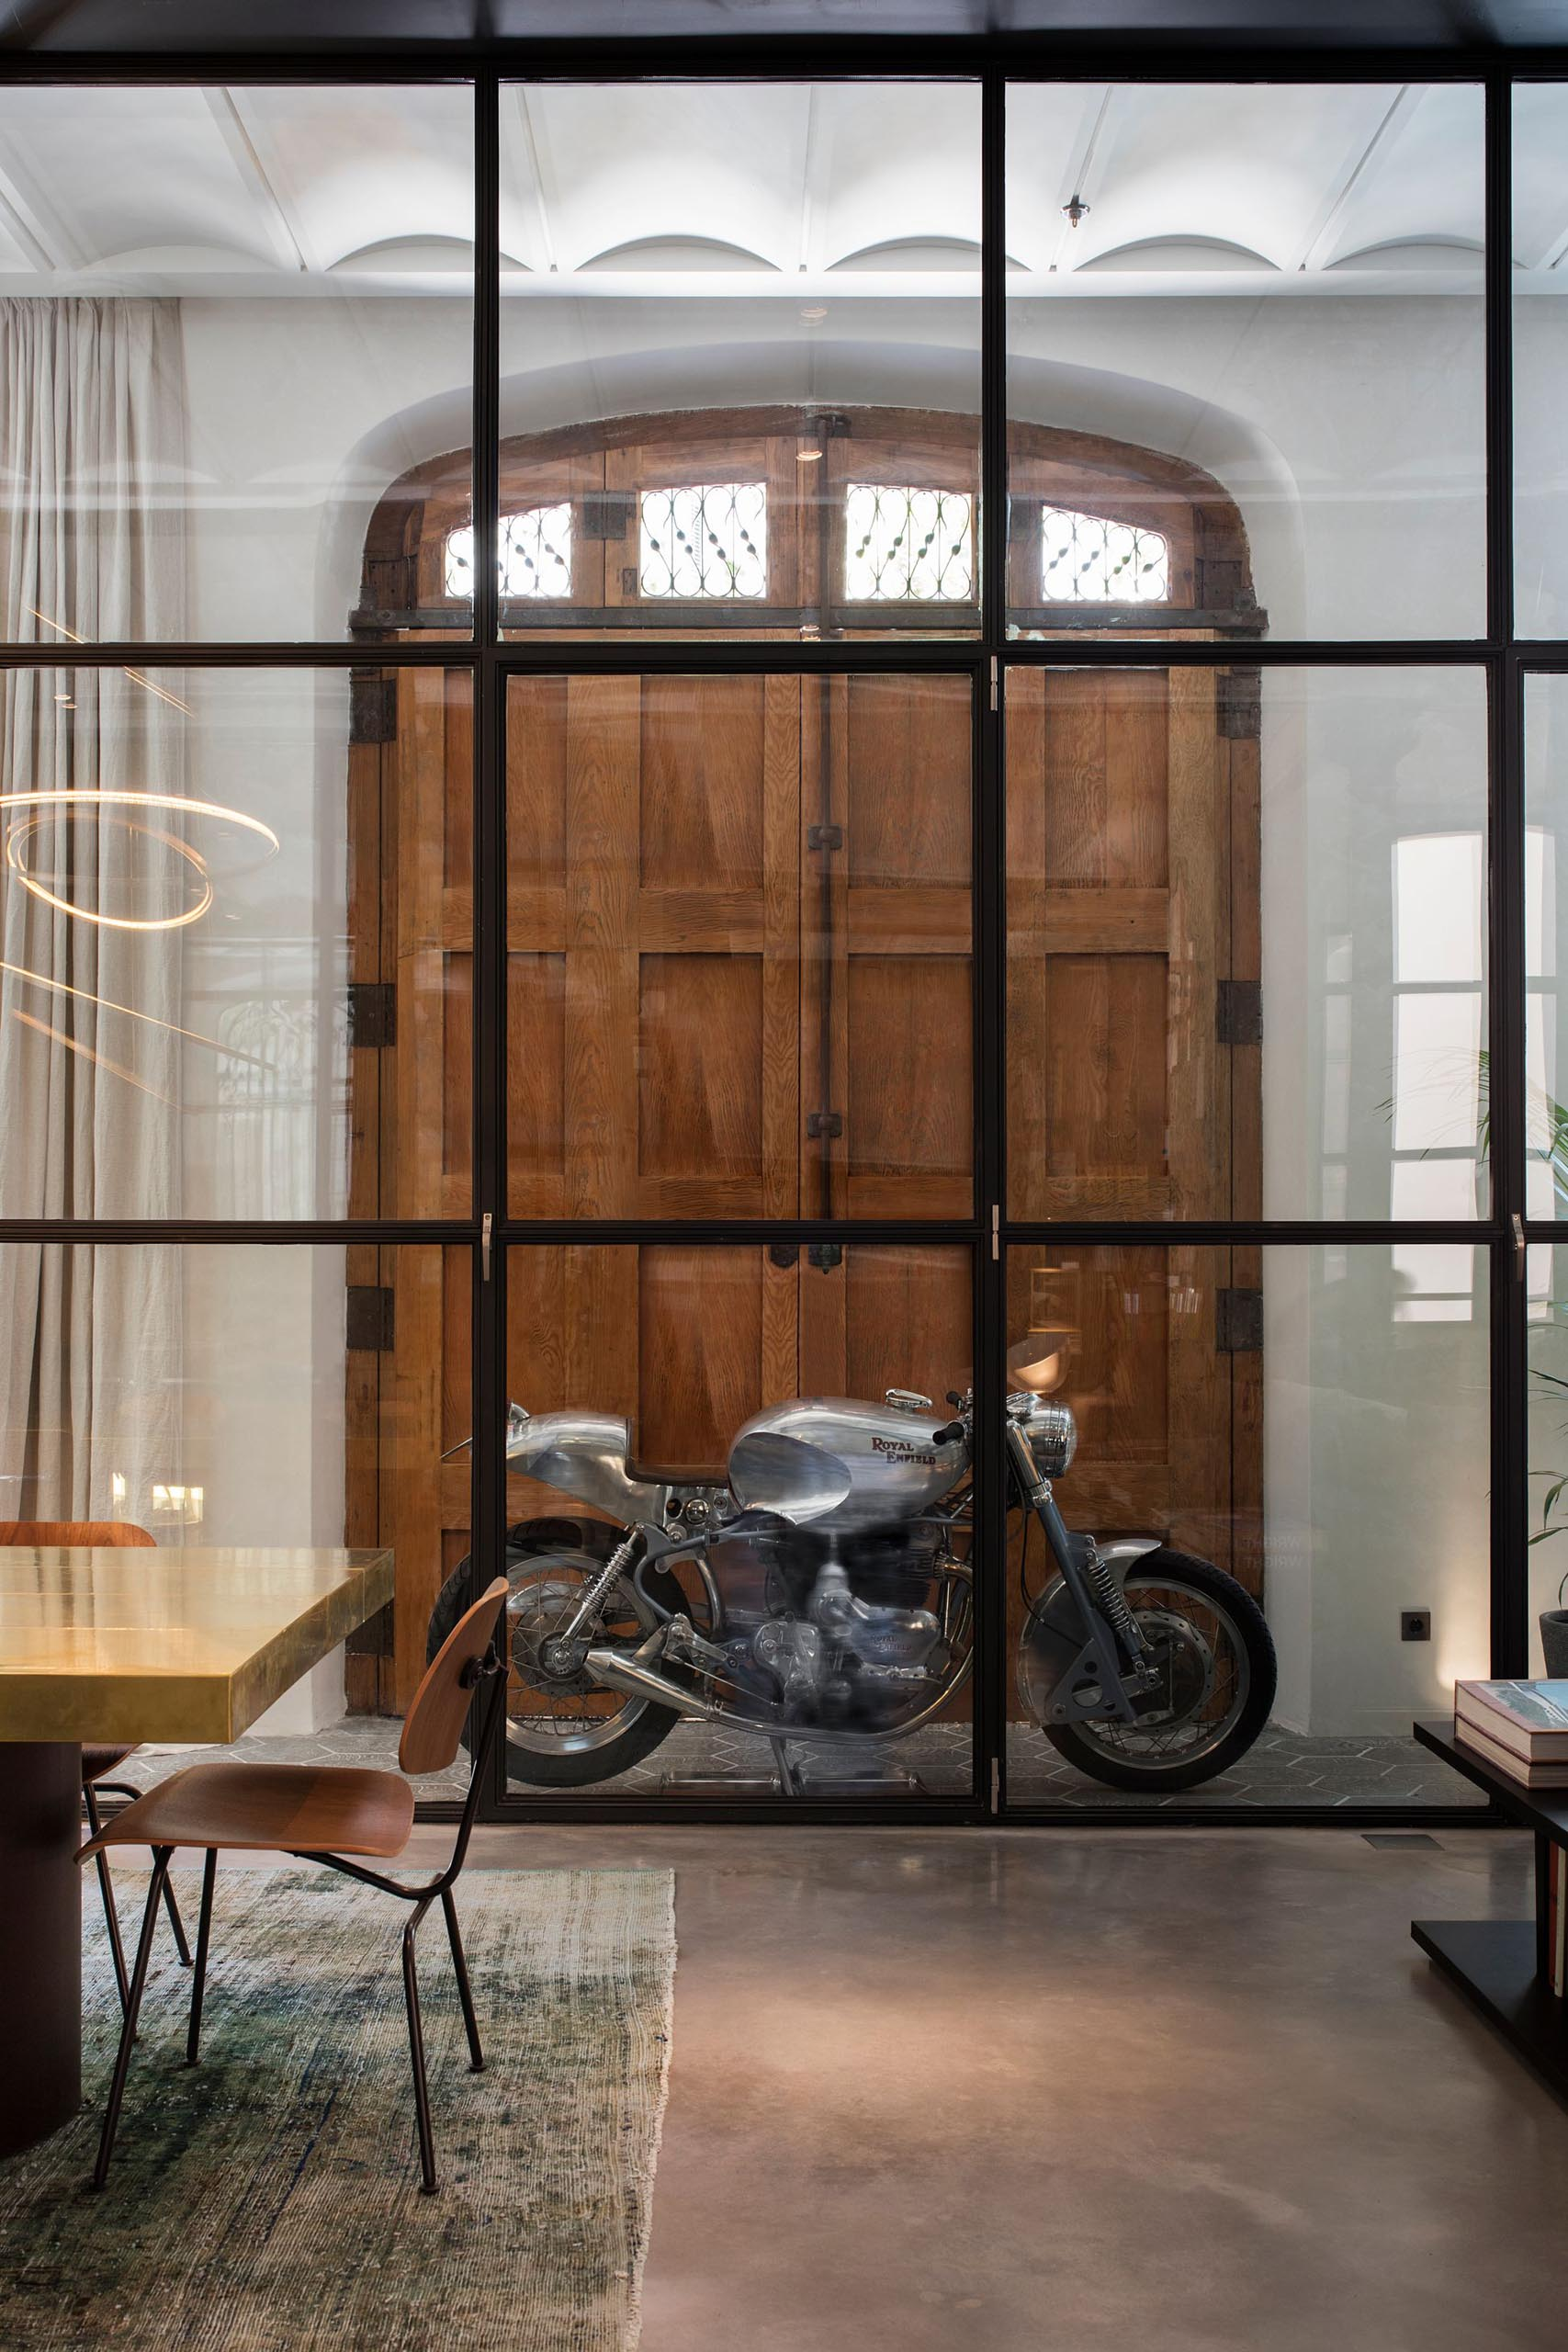 A wall of glass separates the entryway from the open plan interior of this modern apartment.